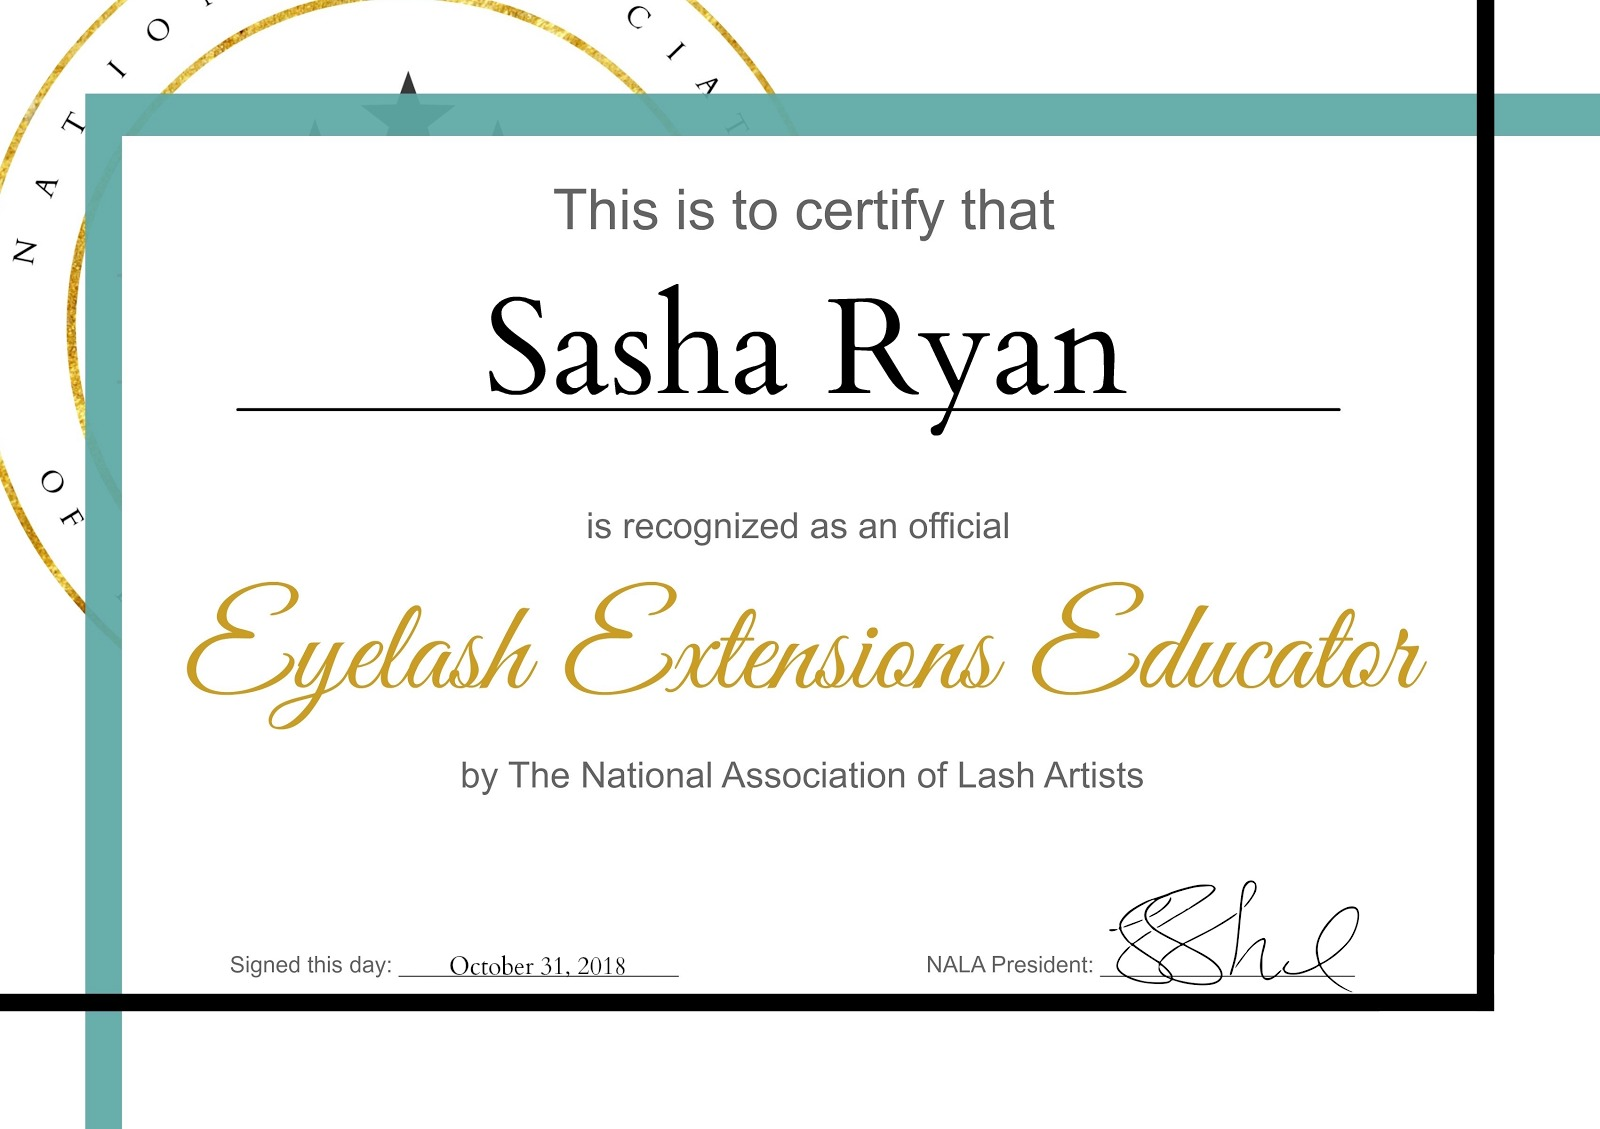 Eyelash Extensions Educator Certificate